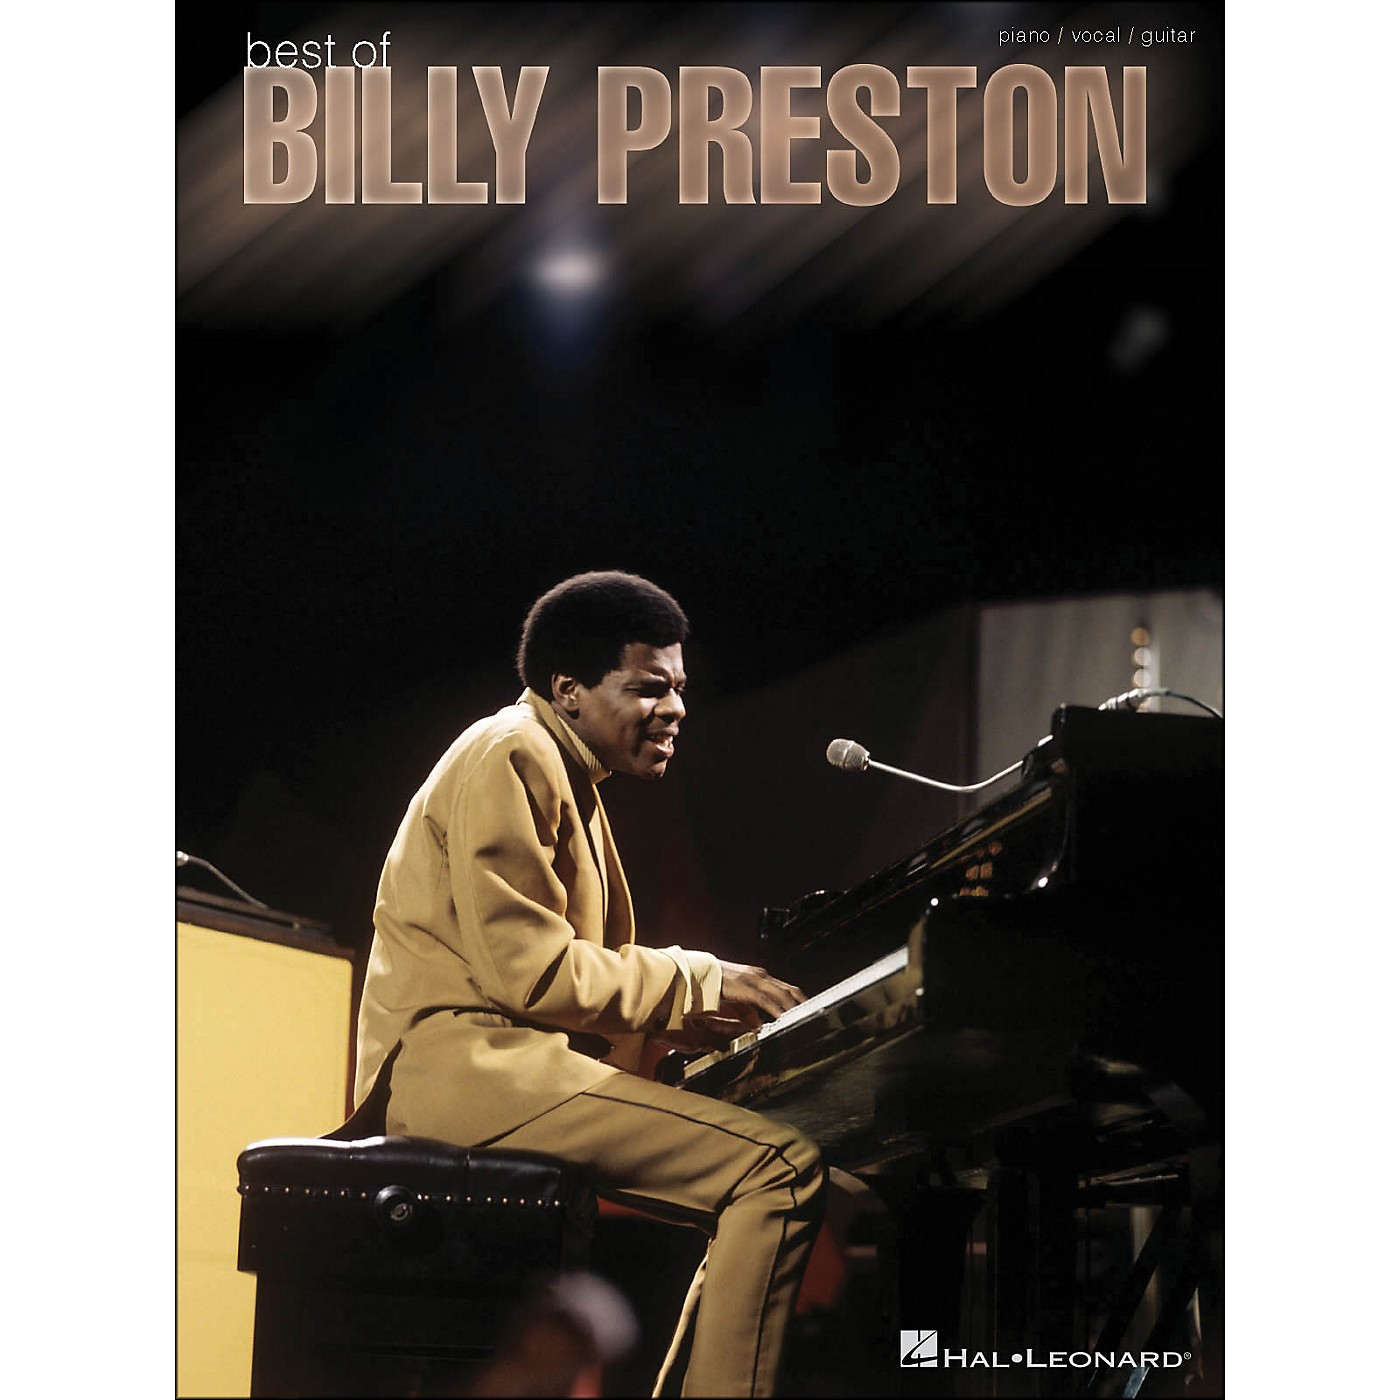 Hal Leonard Best Of Billy Preston arranged for piano, vocal, and guitar (P/V/G) thumbnail